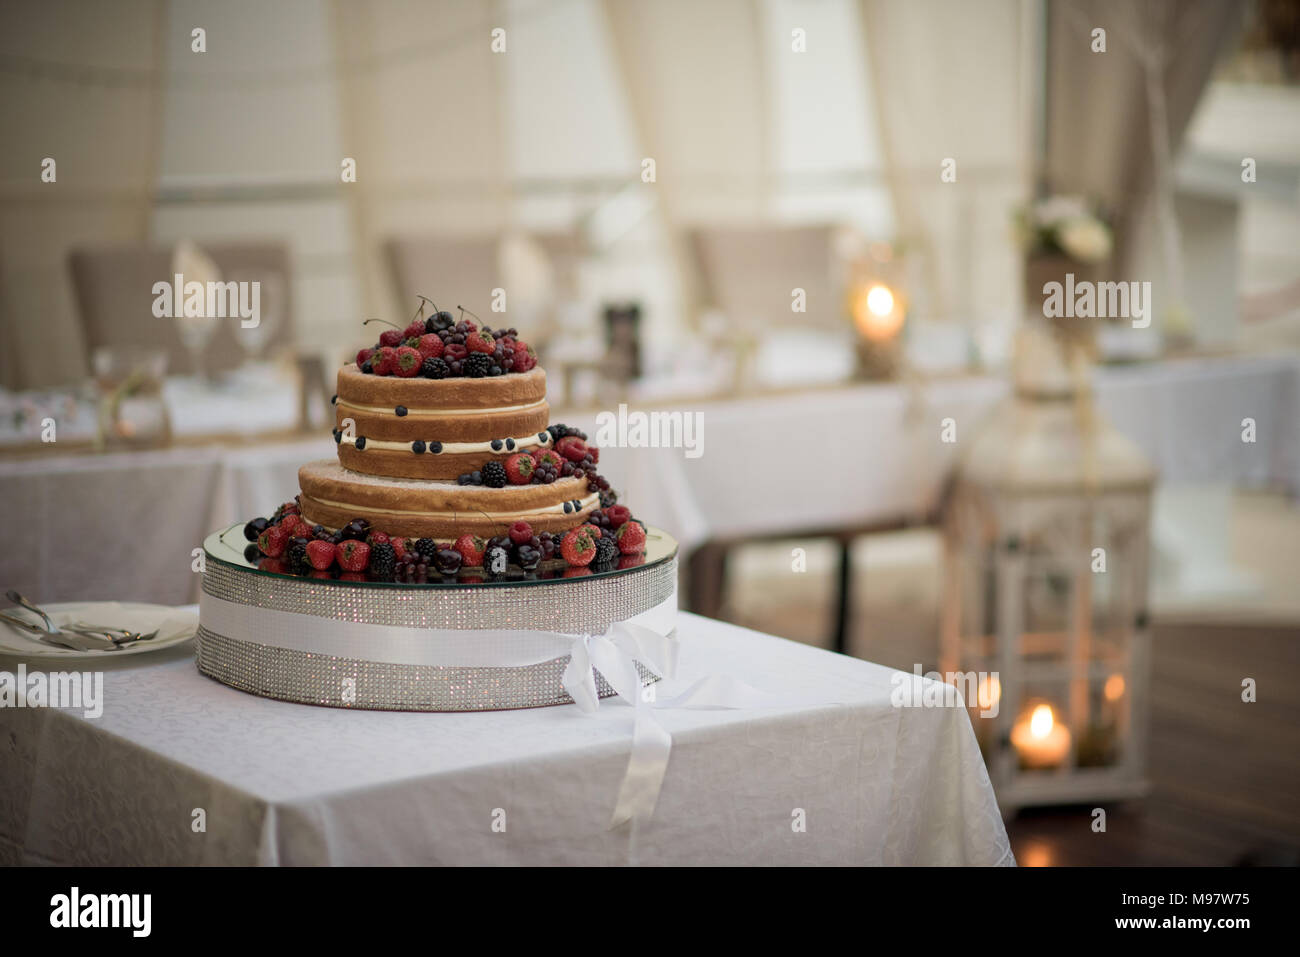 A delicious looking wedding cake - Stock Image